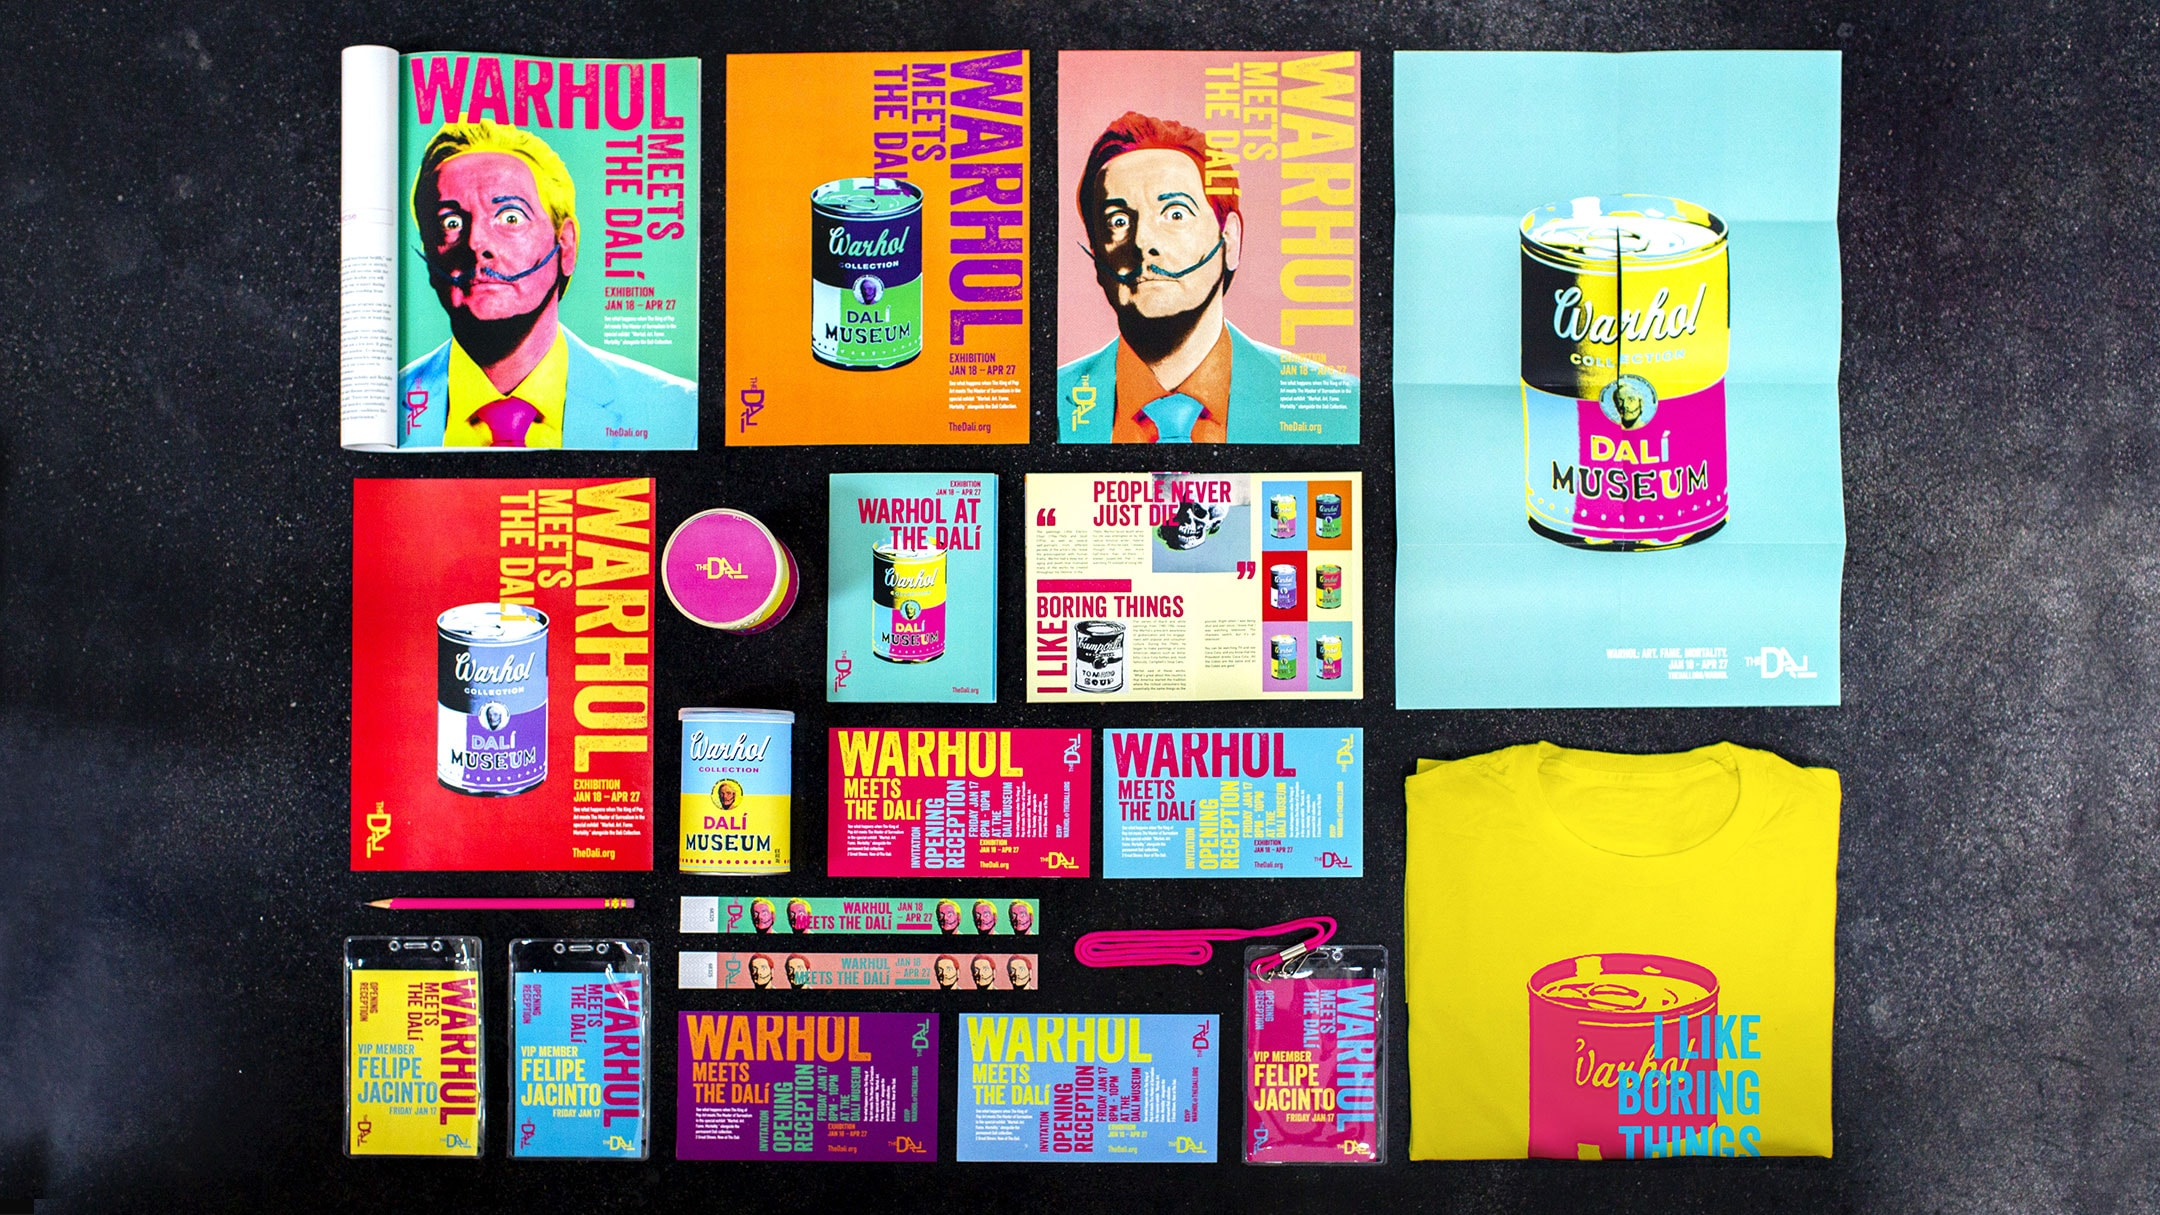 Overview shot of Dalí / Warhol Creative Campaign and attraction marketing elements